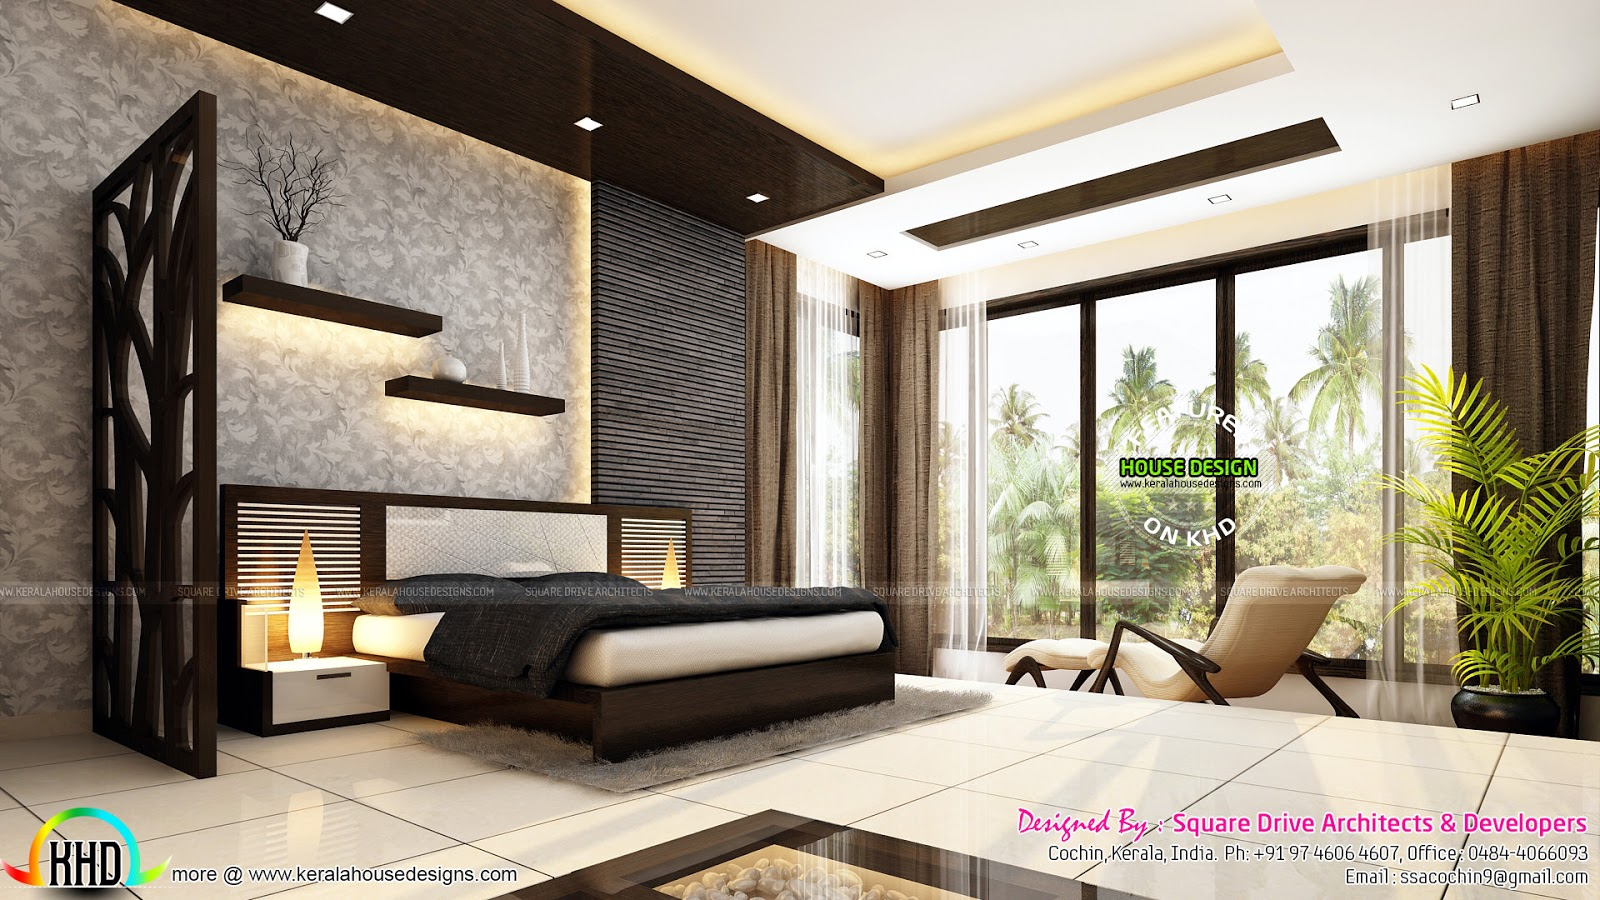 Very beautiful modern interior designs kerala home for Bedroom interior images